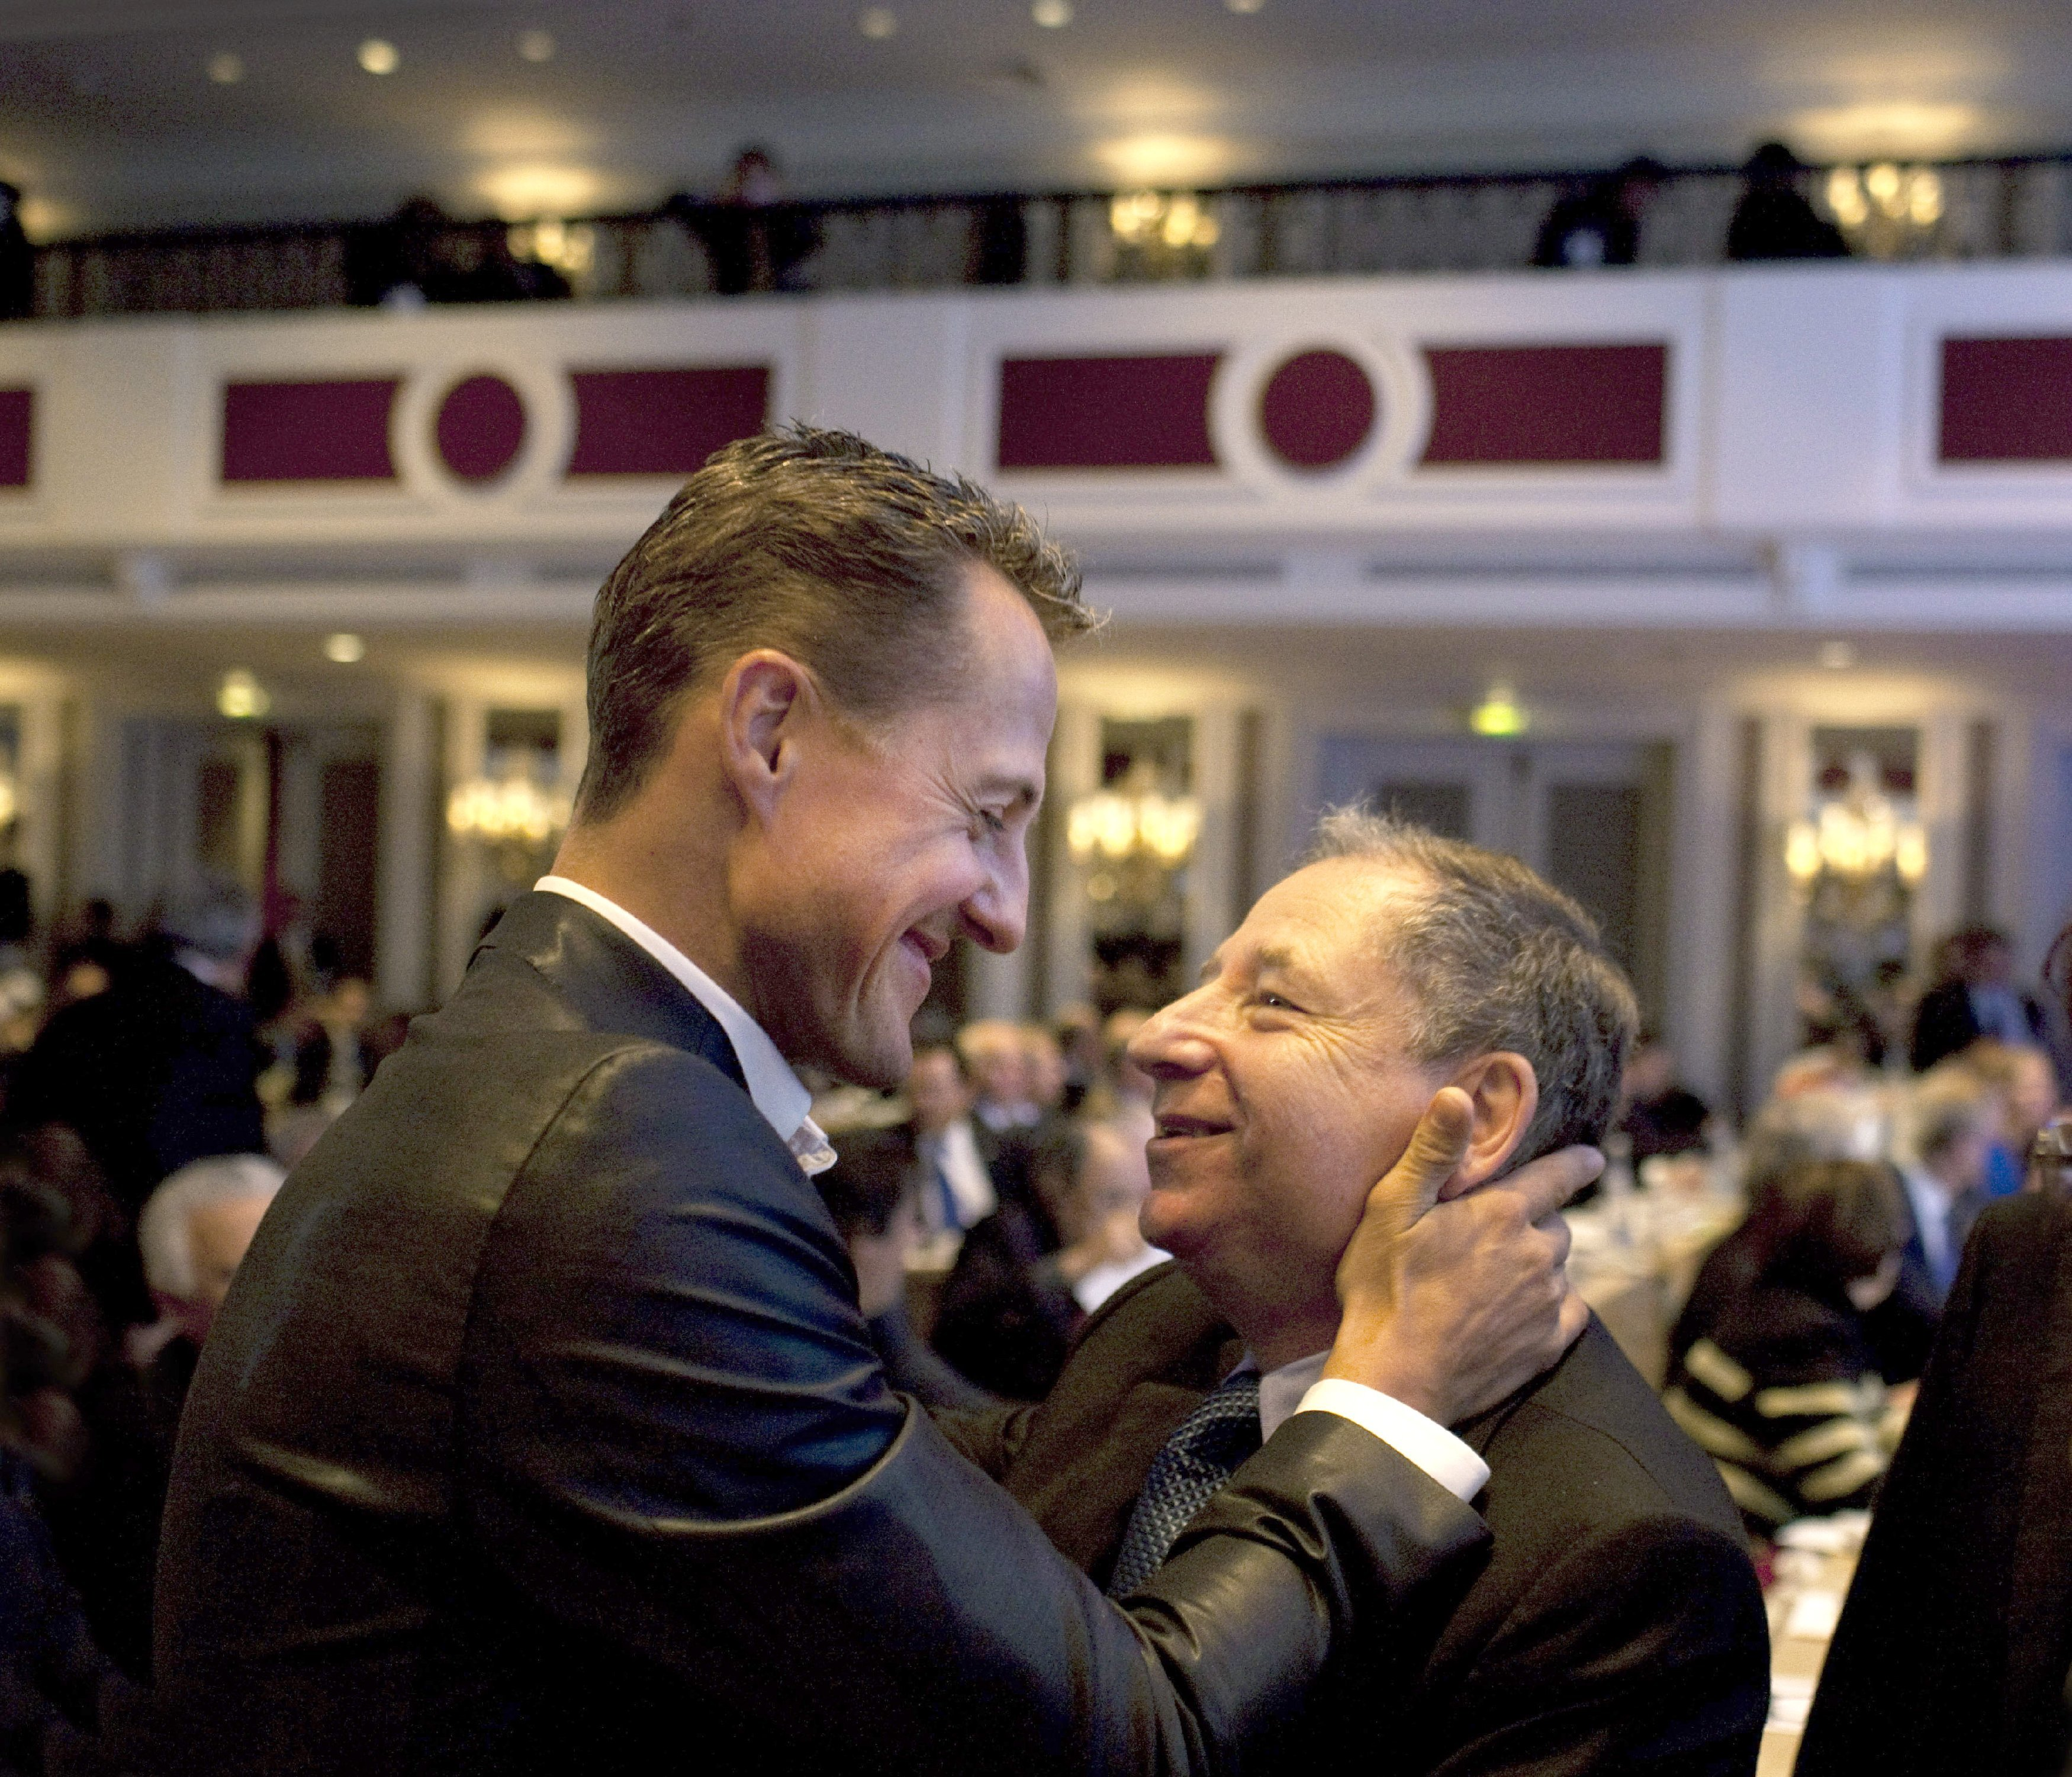 Todt said Schumacher 'keeps fighting' and watches Formula 1. Credit: PA